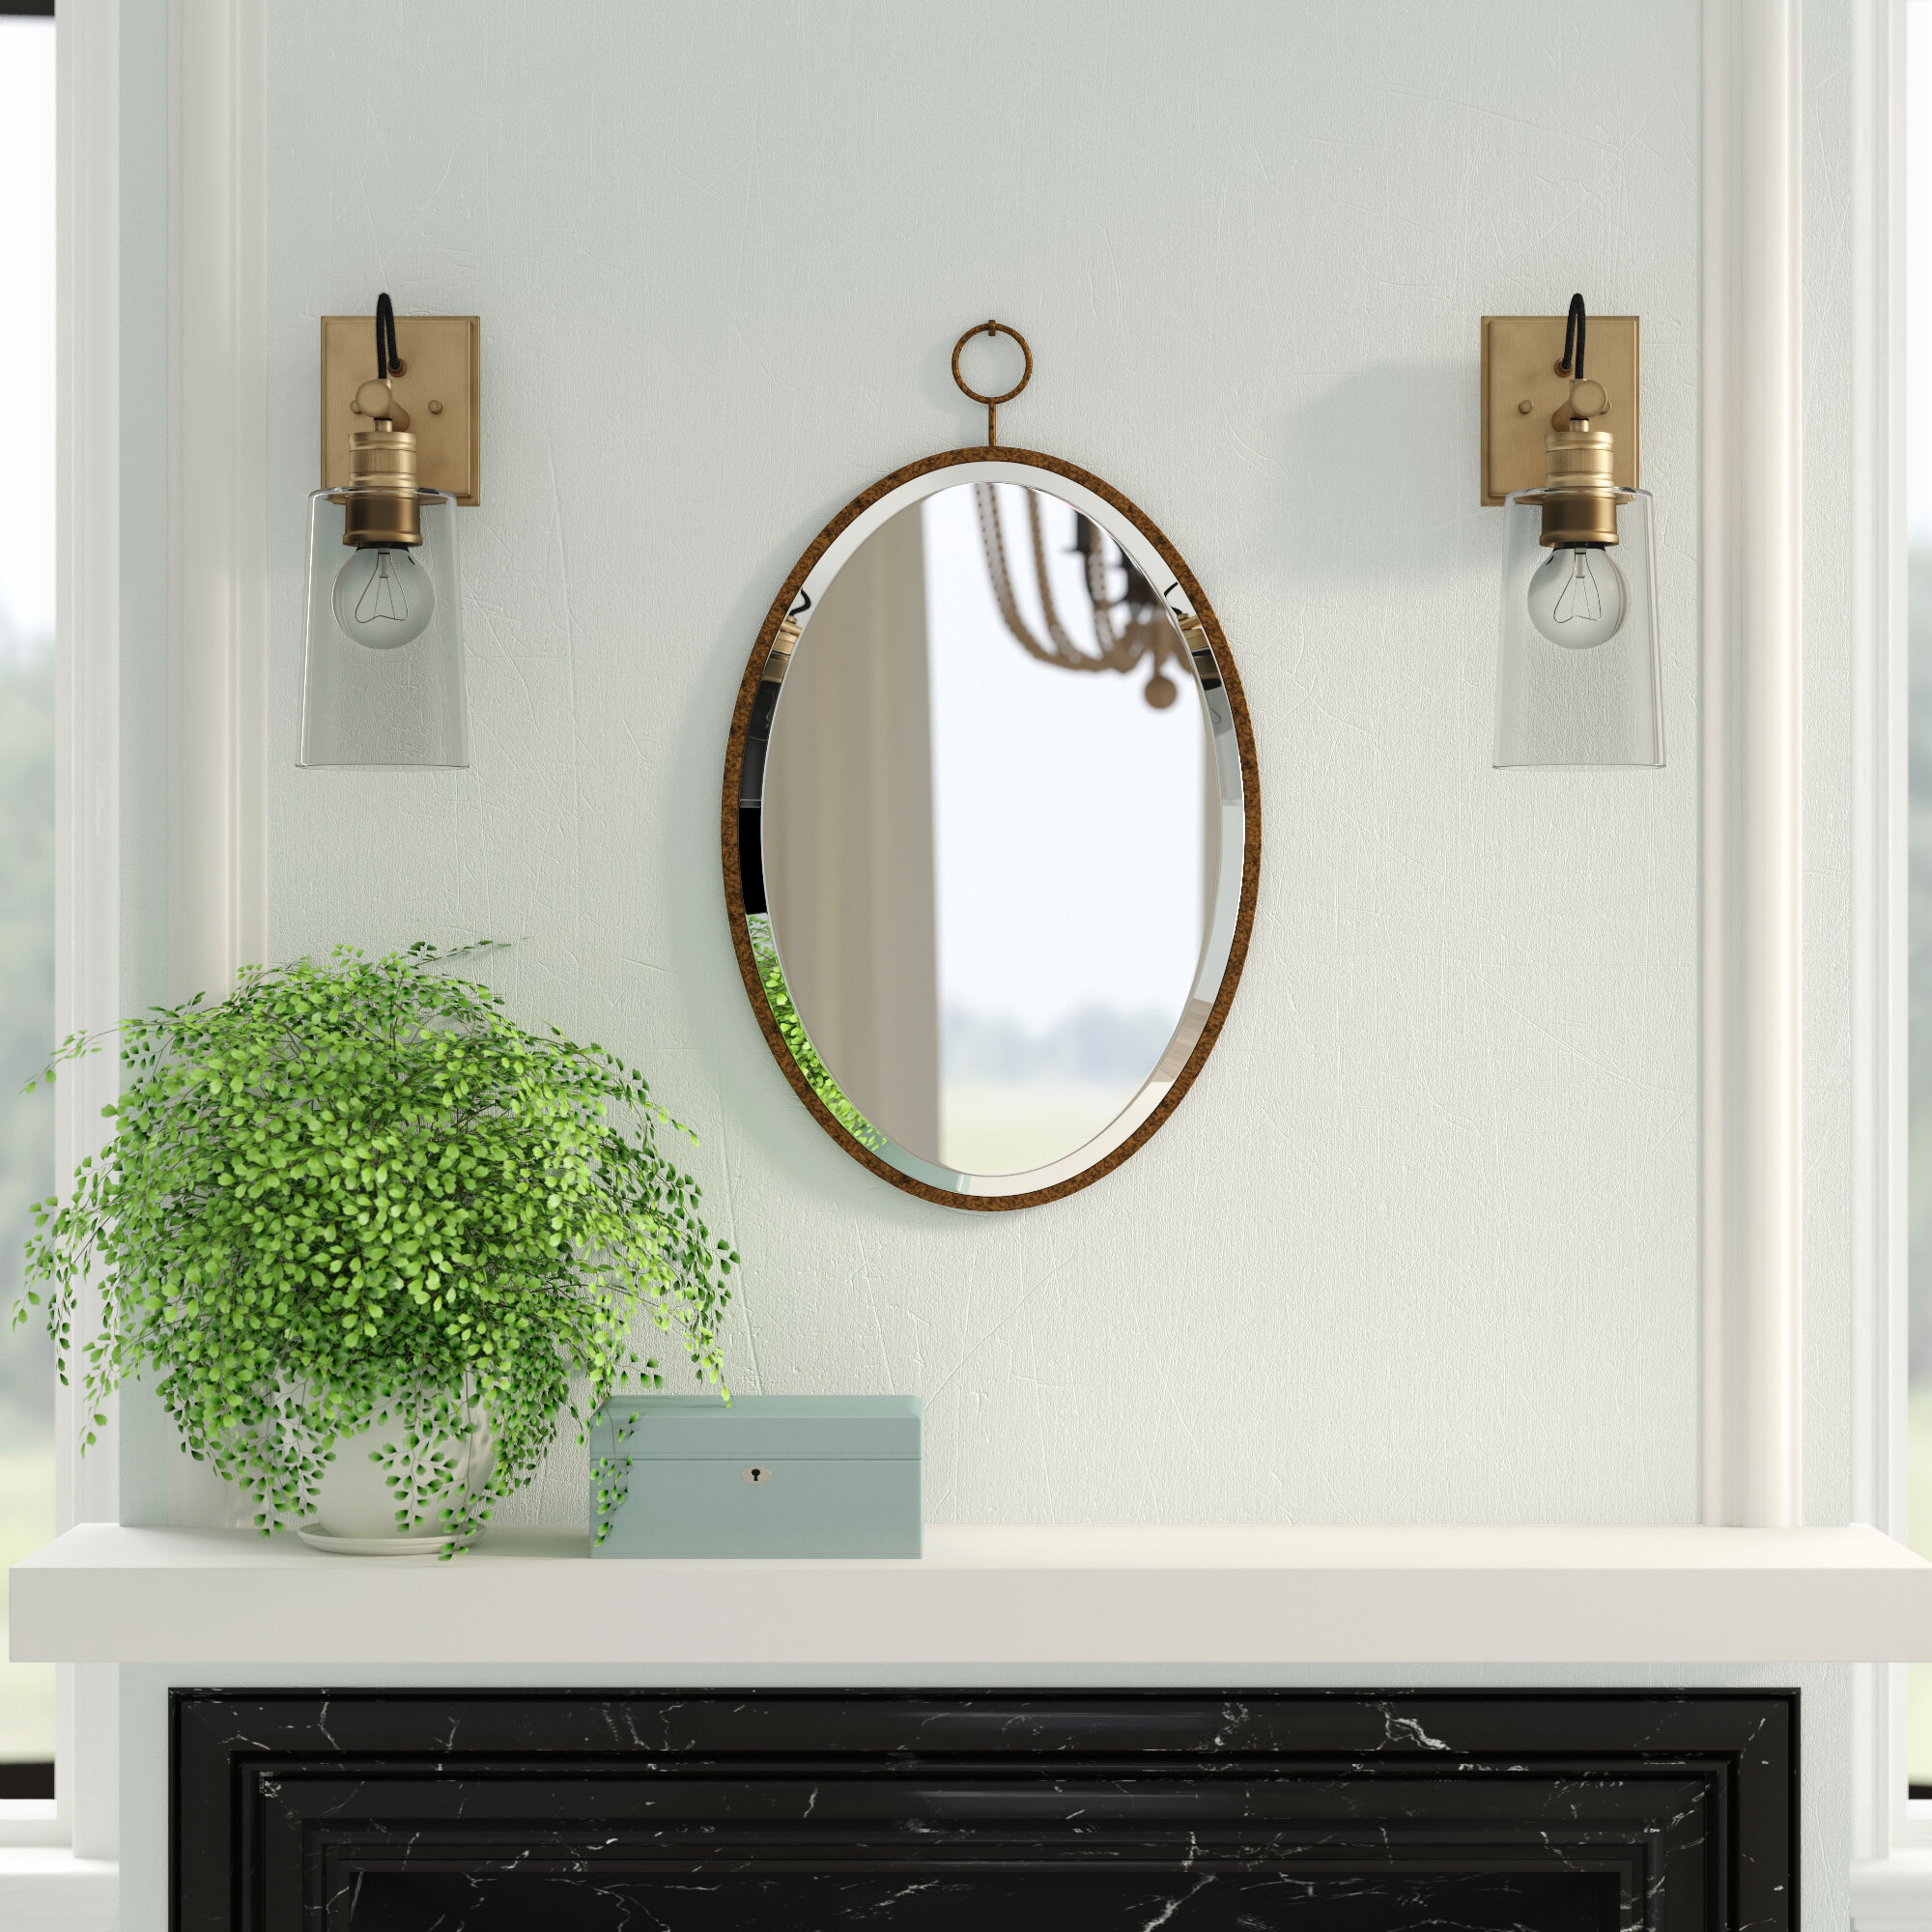 Modern & Contemporary Wall & Accent Mirrors | Joss & Main With Regard To Needville Modern & Contemporary Accent Mirrors (Image 11 of 20)